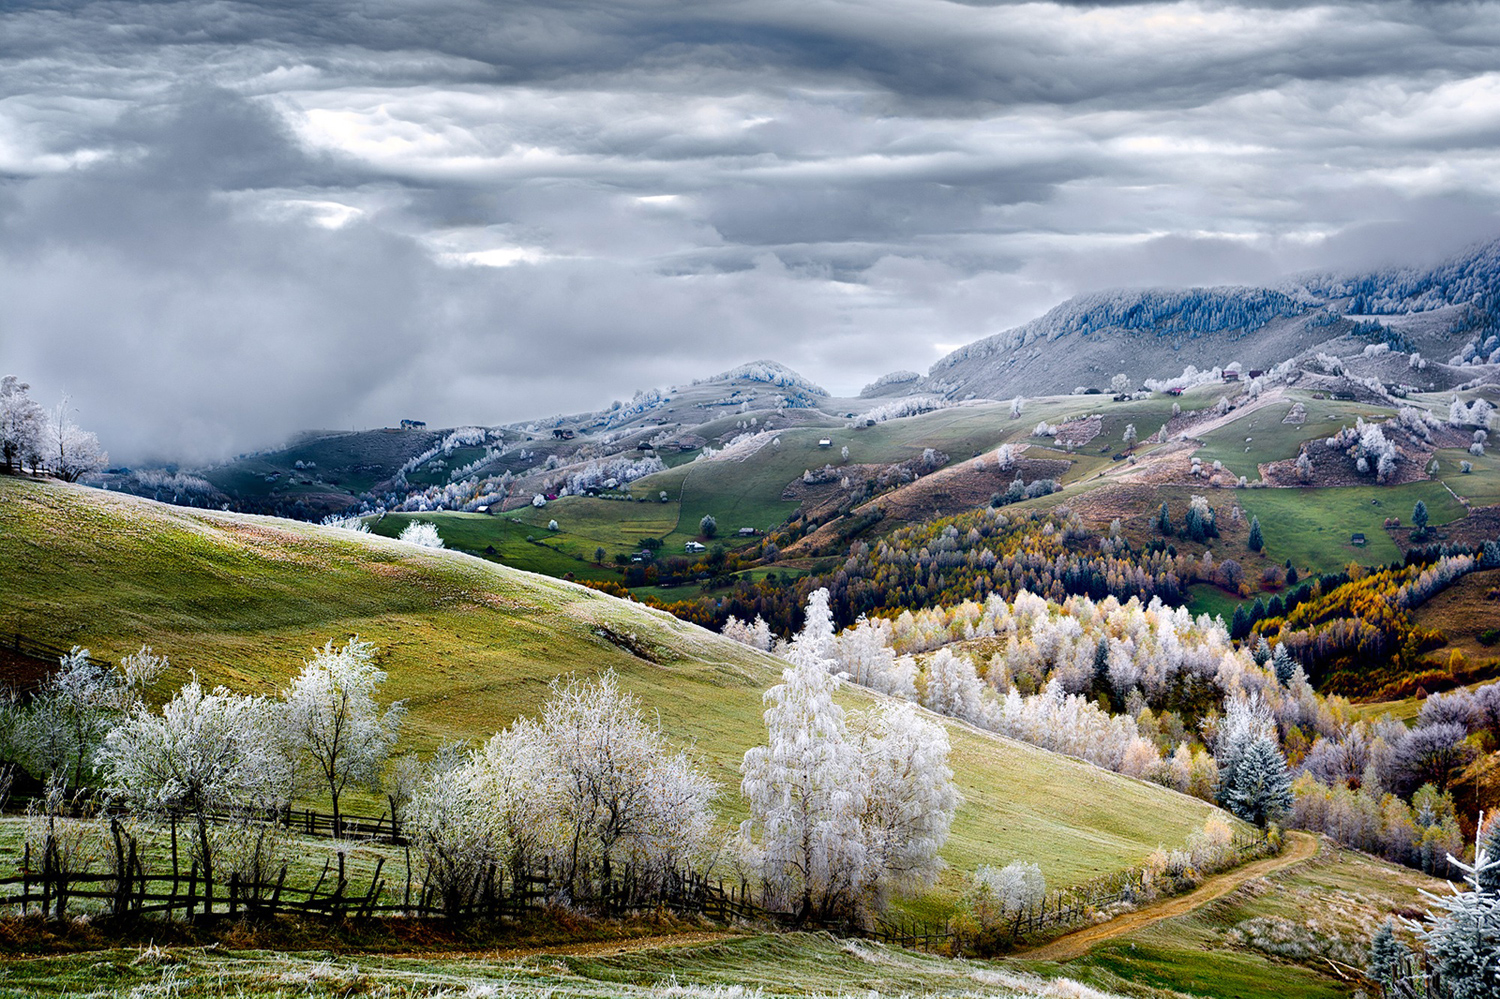 10. Floresta em Pestera, Roménia. © Eduard Gutescu / National Geographic Traveler Photo Contest